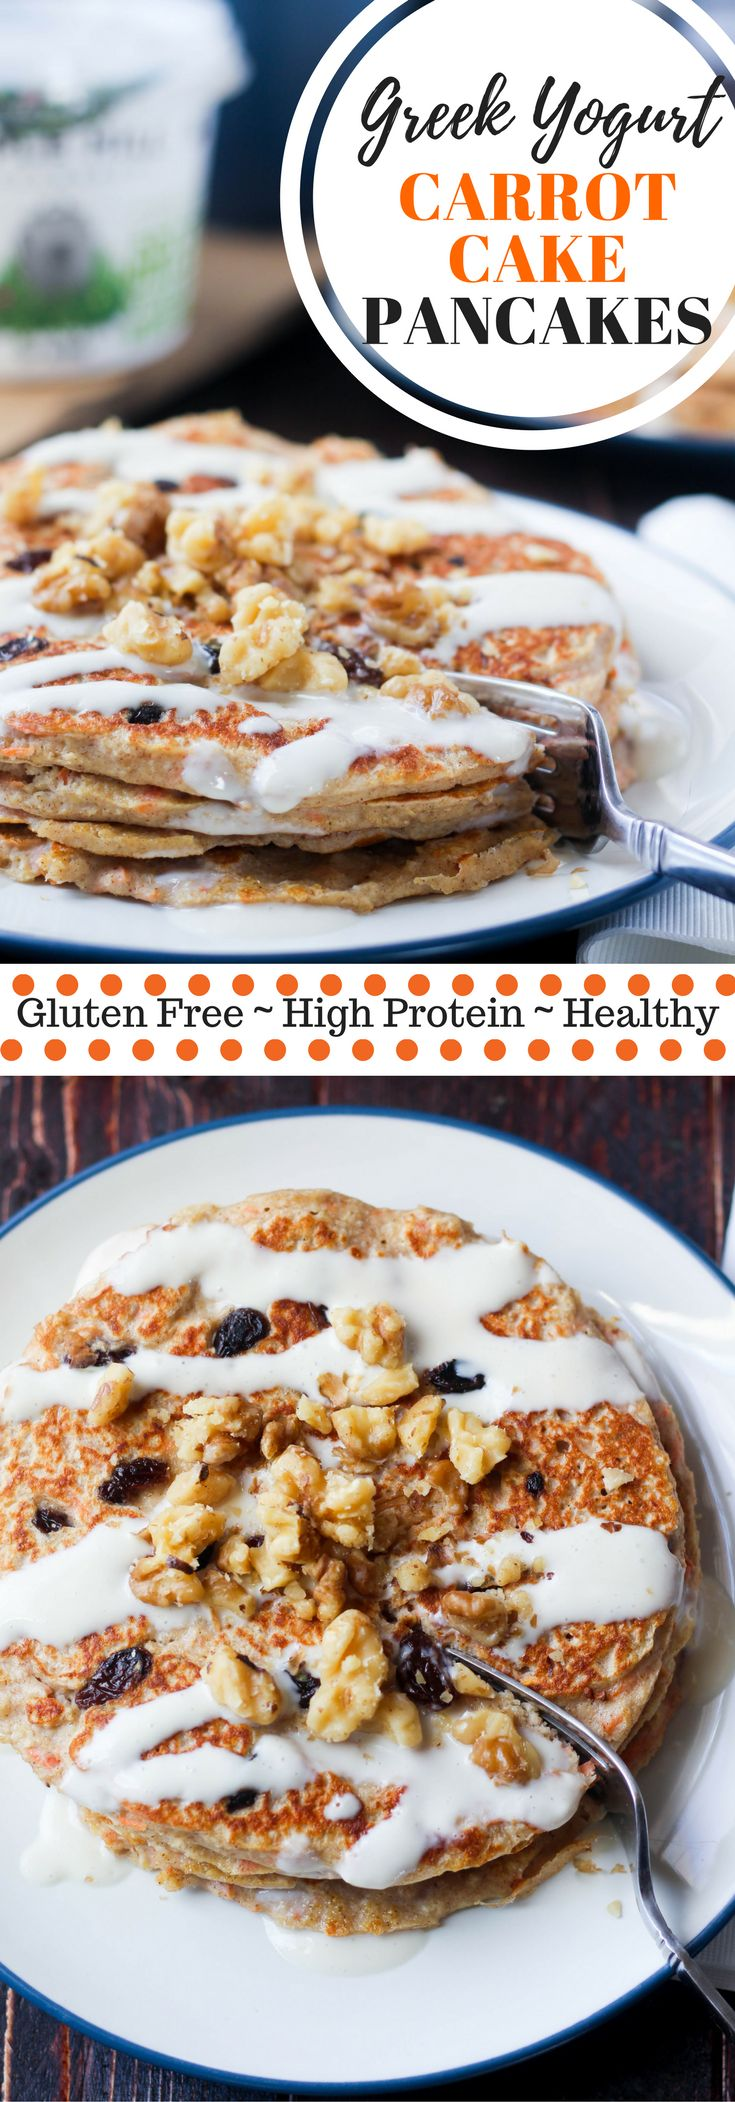 Gluten Free Carrot Cake Greek Yogurt Pancakes are high protein, high fiber, and taste like your favorite cake, what's not to love?   #sponsored via @hungryhobby